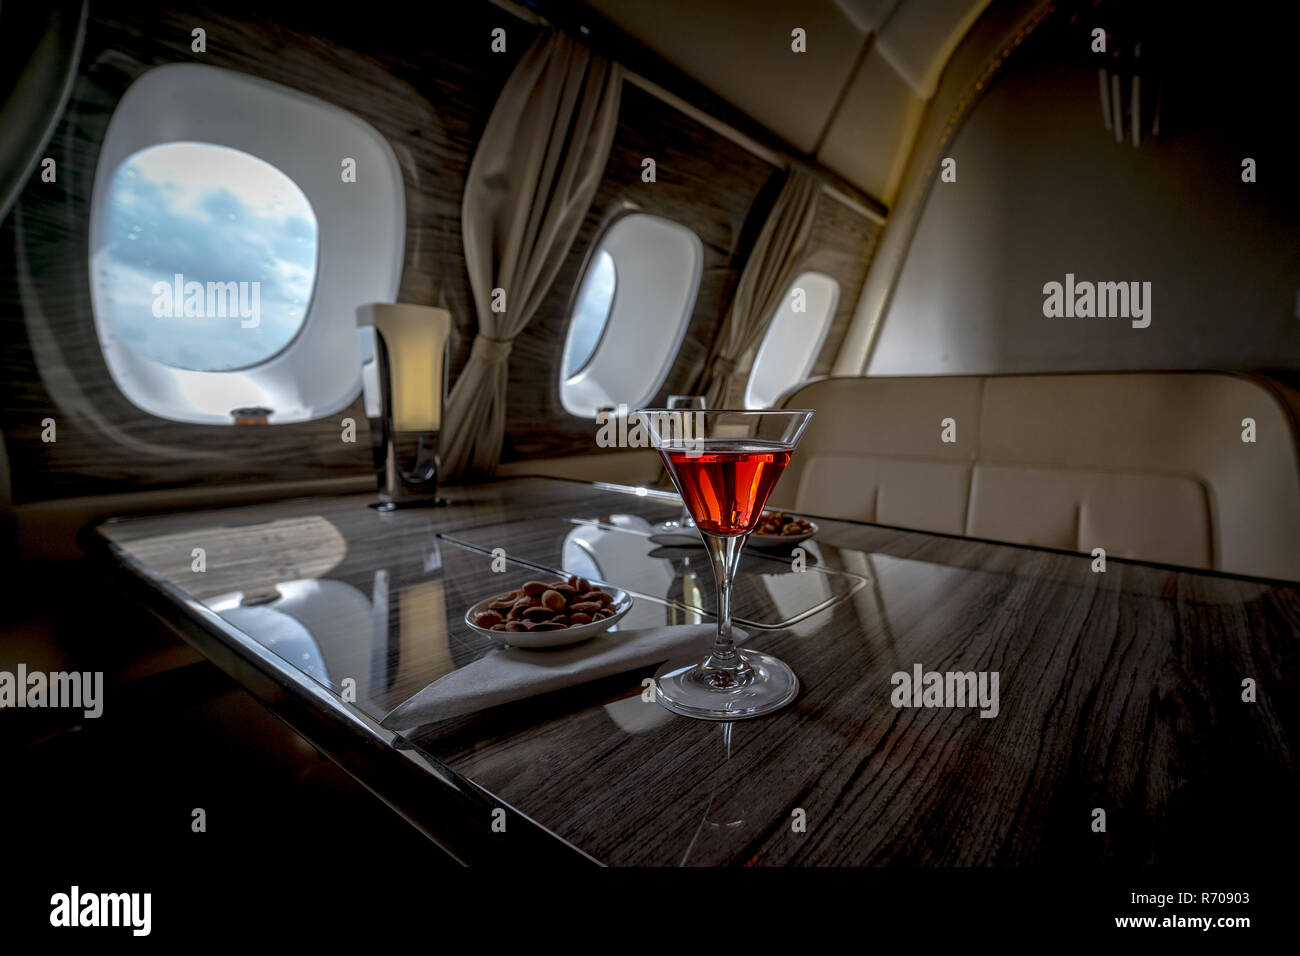 Interior of a business class of a commercial passenger plane, an armchair and a window, a table and a cocktail glass with a drink. - Stock Image